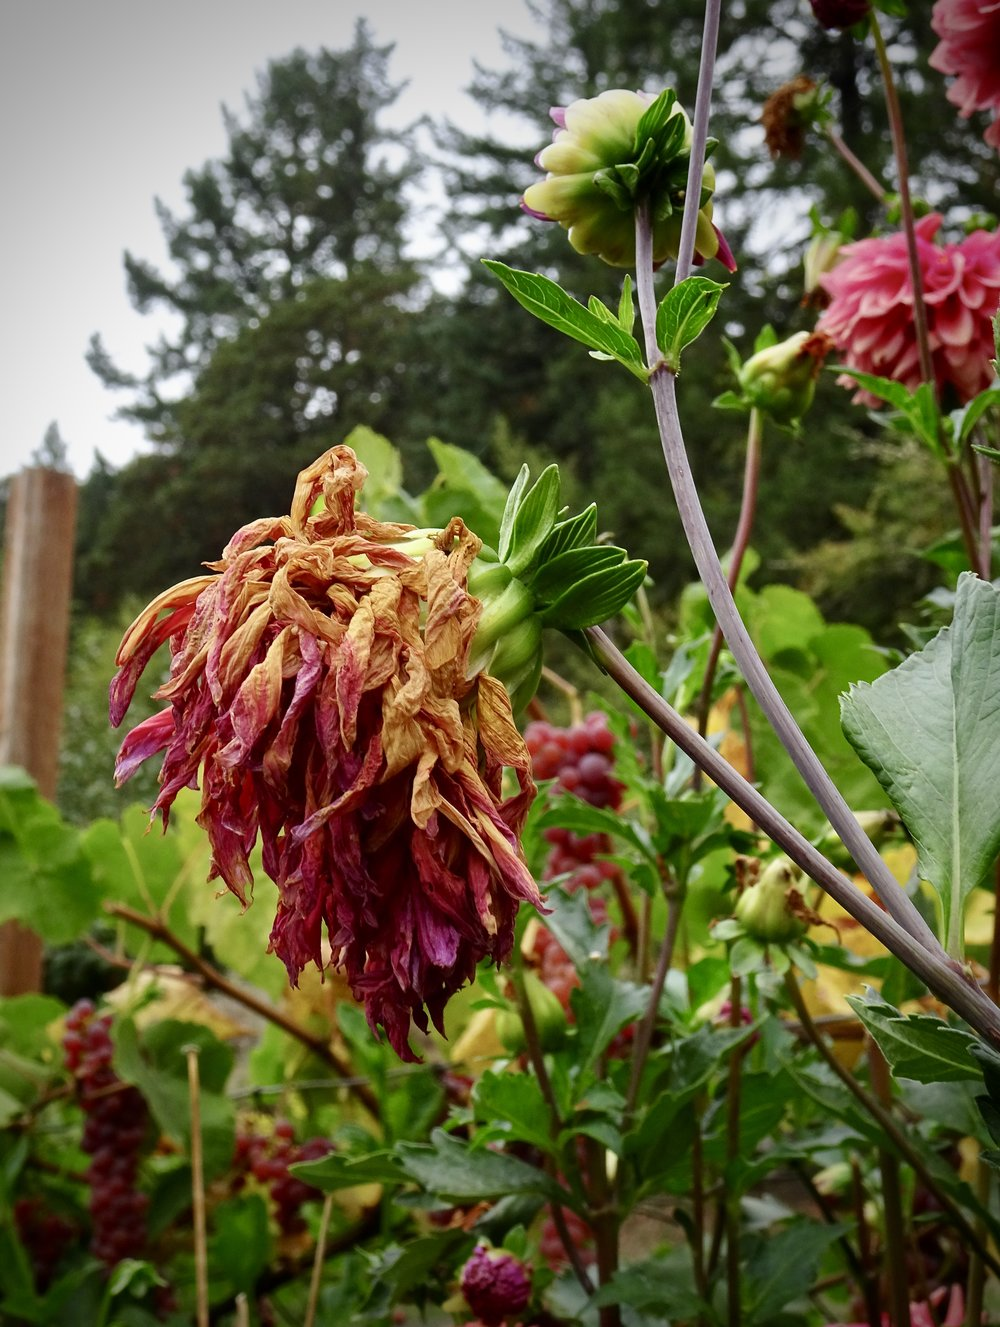 Season's end dahlia alongside fresher blossoms. There is no discomfort in nature between endings, middles and ends. Photo by Anne Richardson, 9-29-18. Yamhill, OR